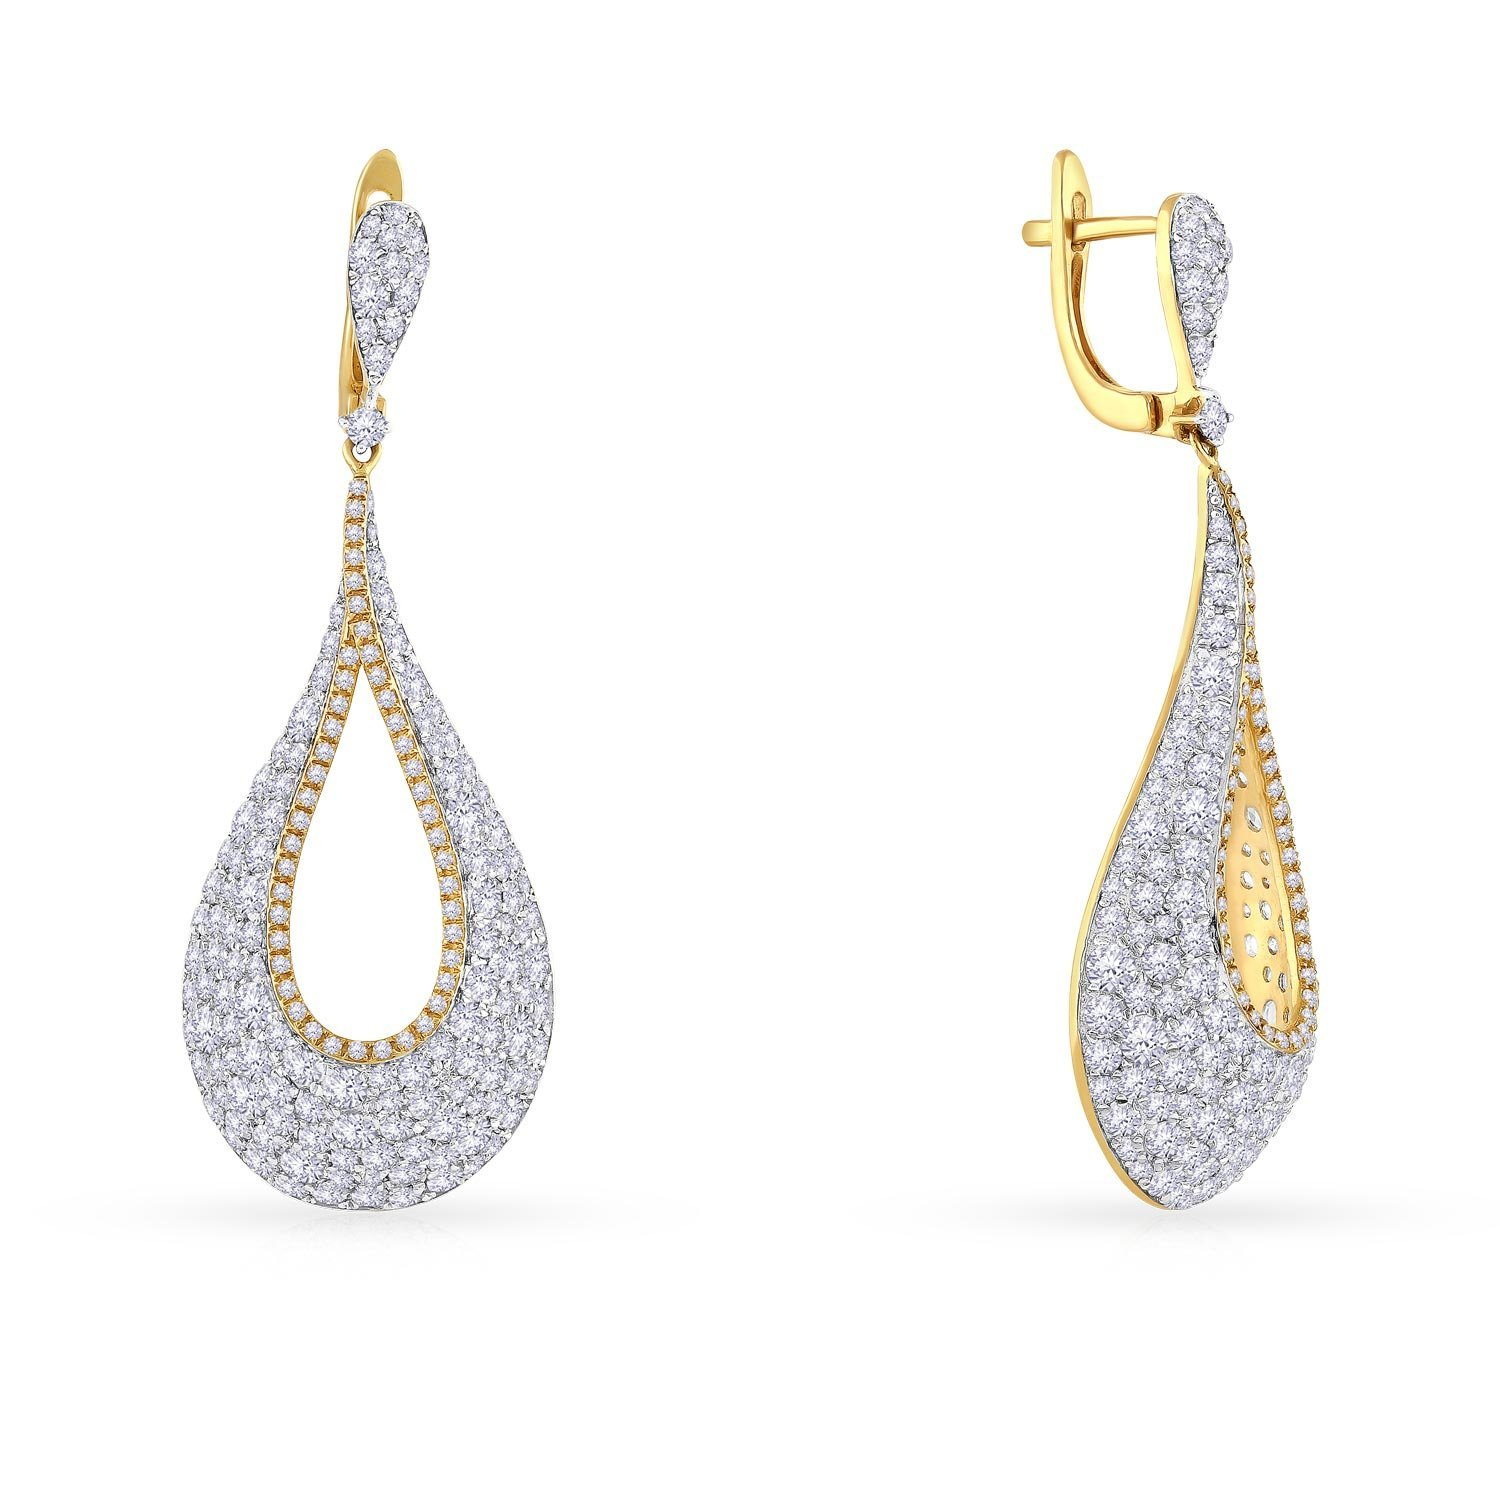 Malabar Gold and Diamonds 18KT Yellow Gold and Diamond Drop Earrings for Women